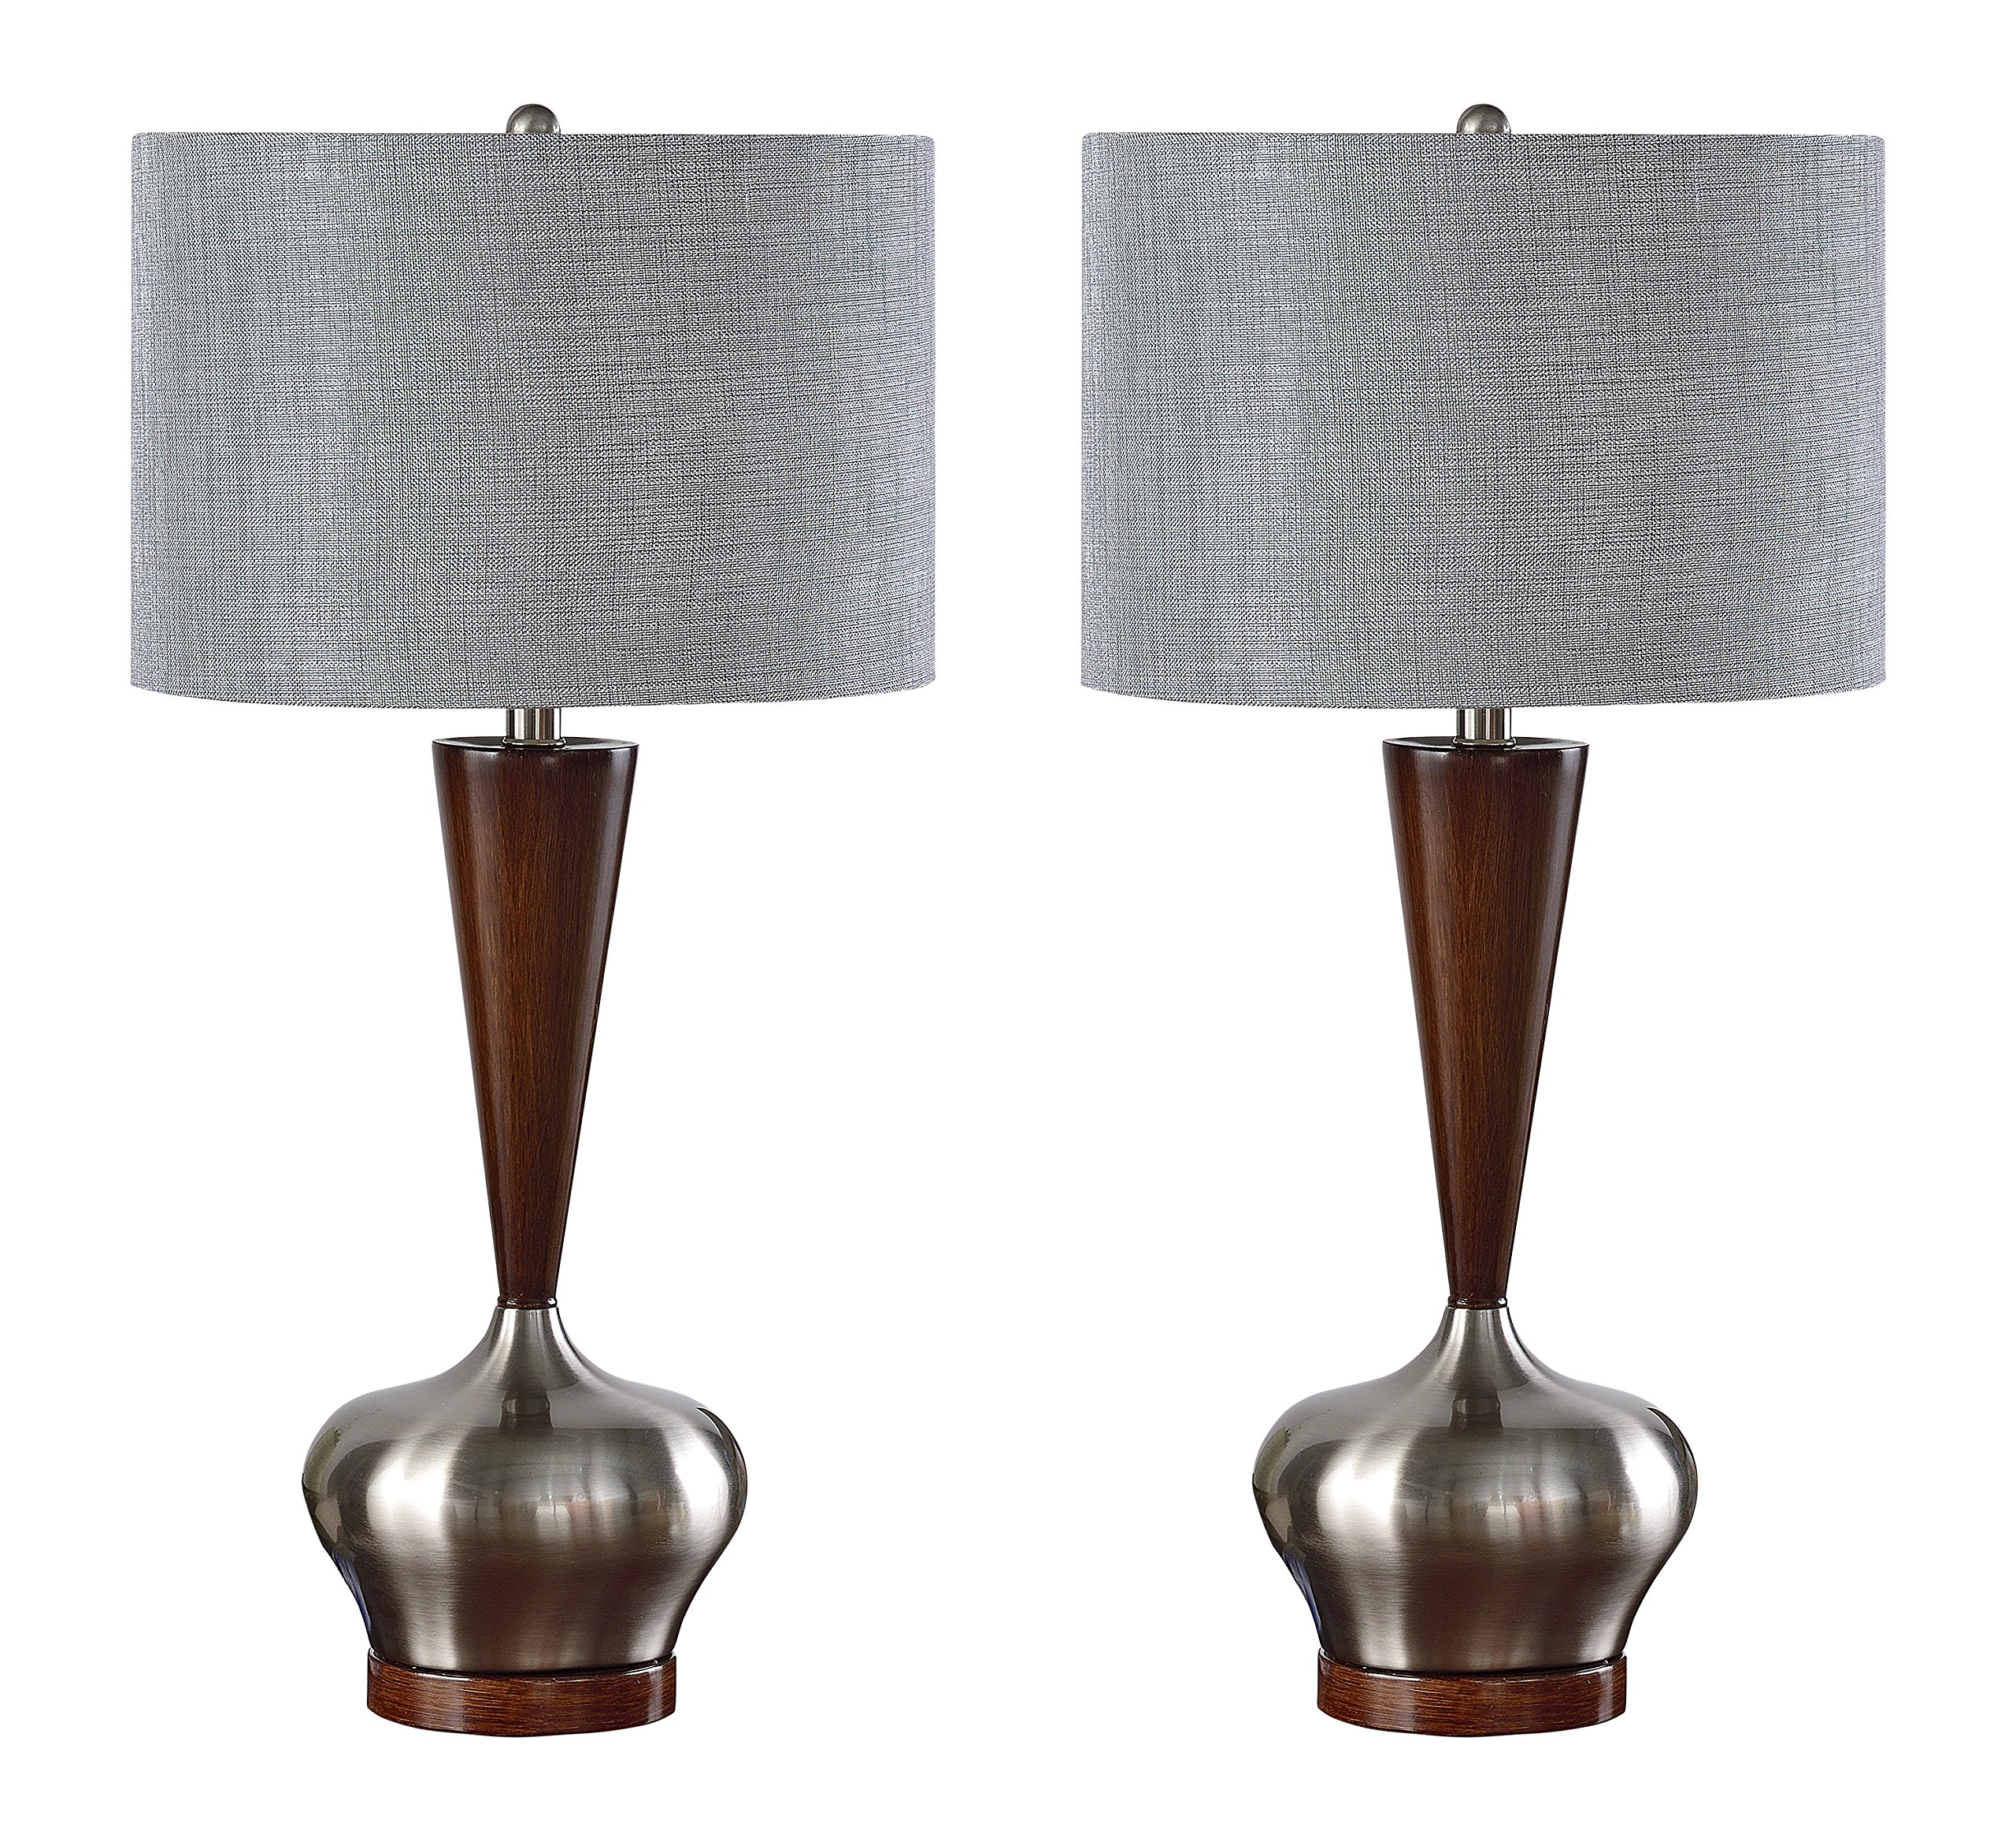 Kings Brand Brushed Nickel / Walnut Base With Silver Fabric Shade Table Lamps, Set of 2